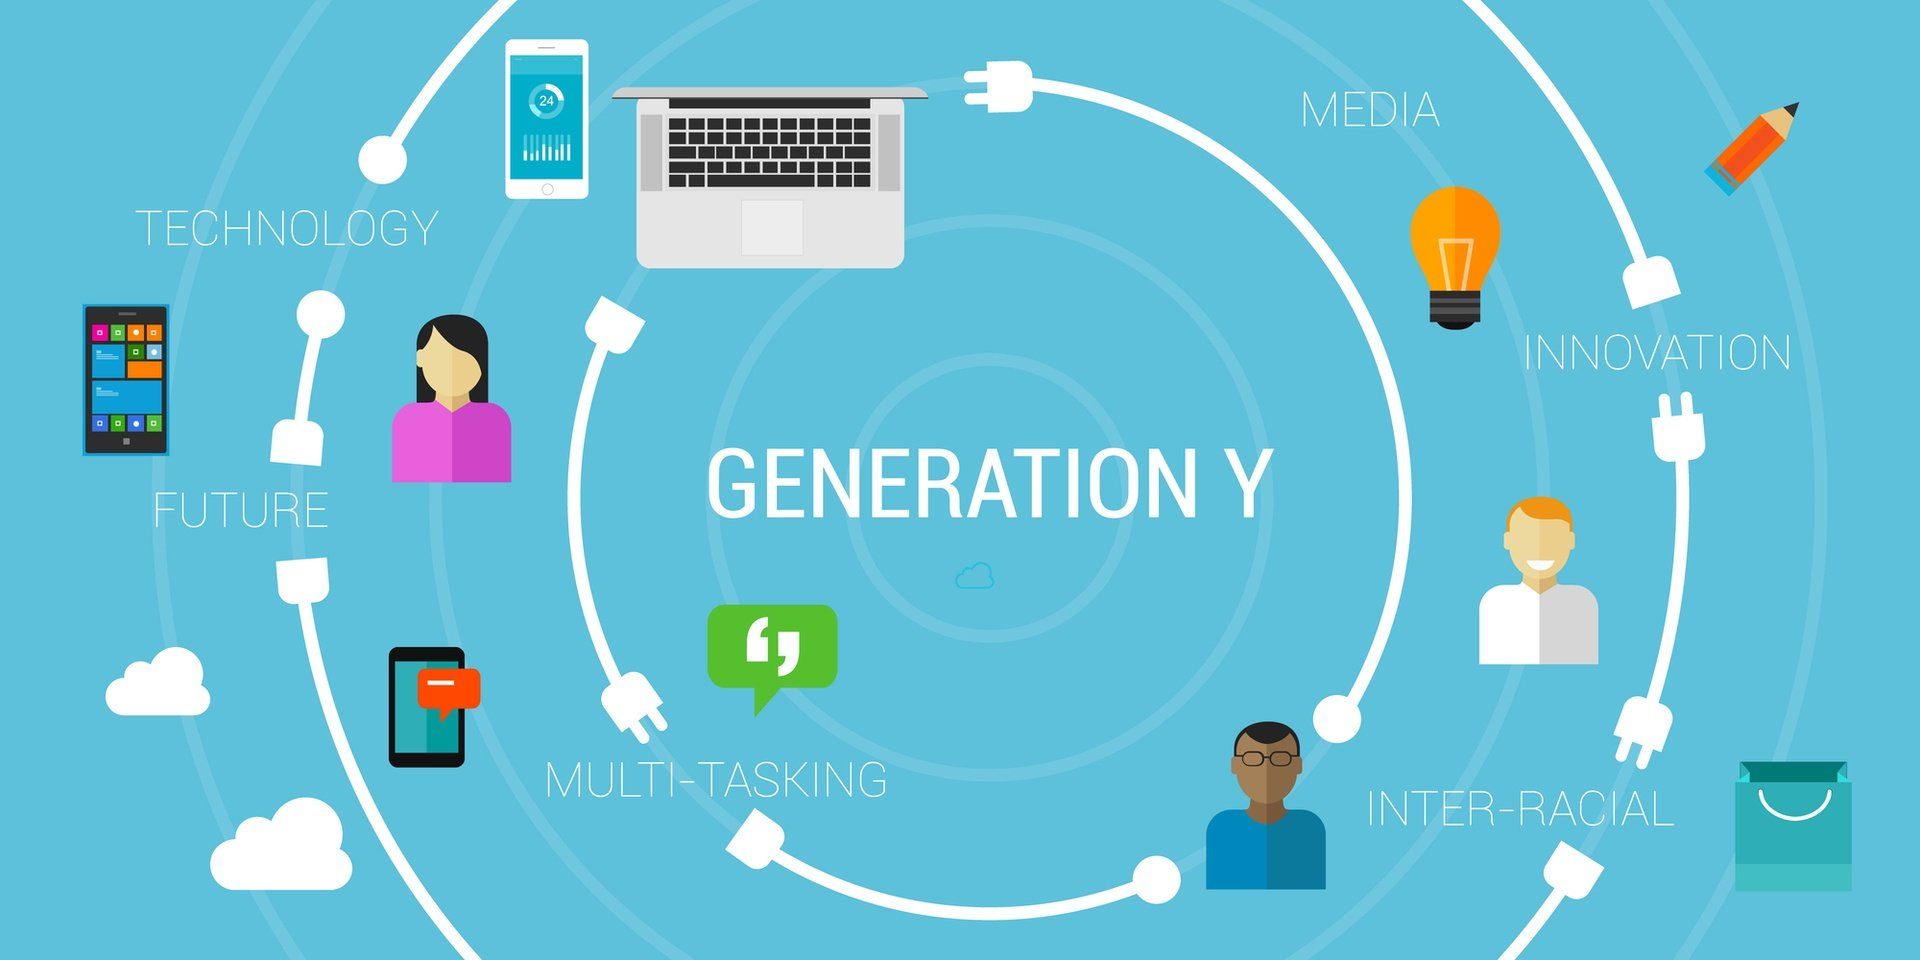 Millennials want eLearning that is innovative, uses multi-media, and has strong storylines and entertainment value.